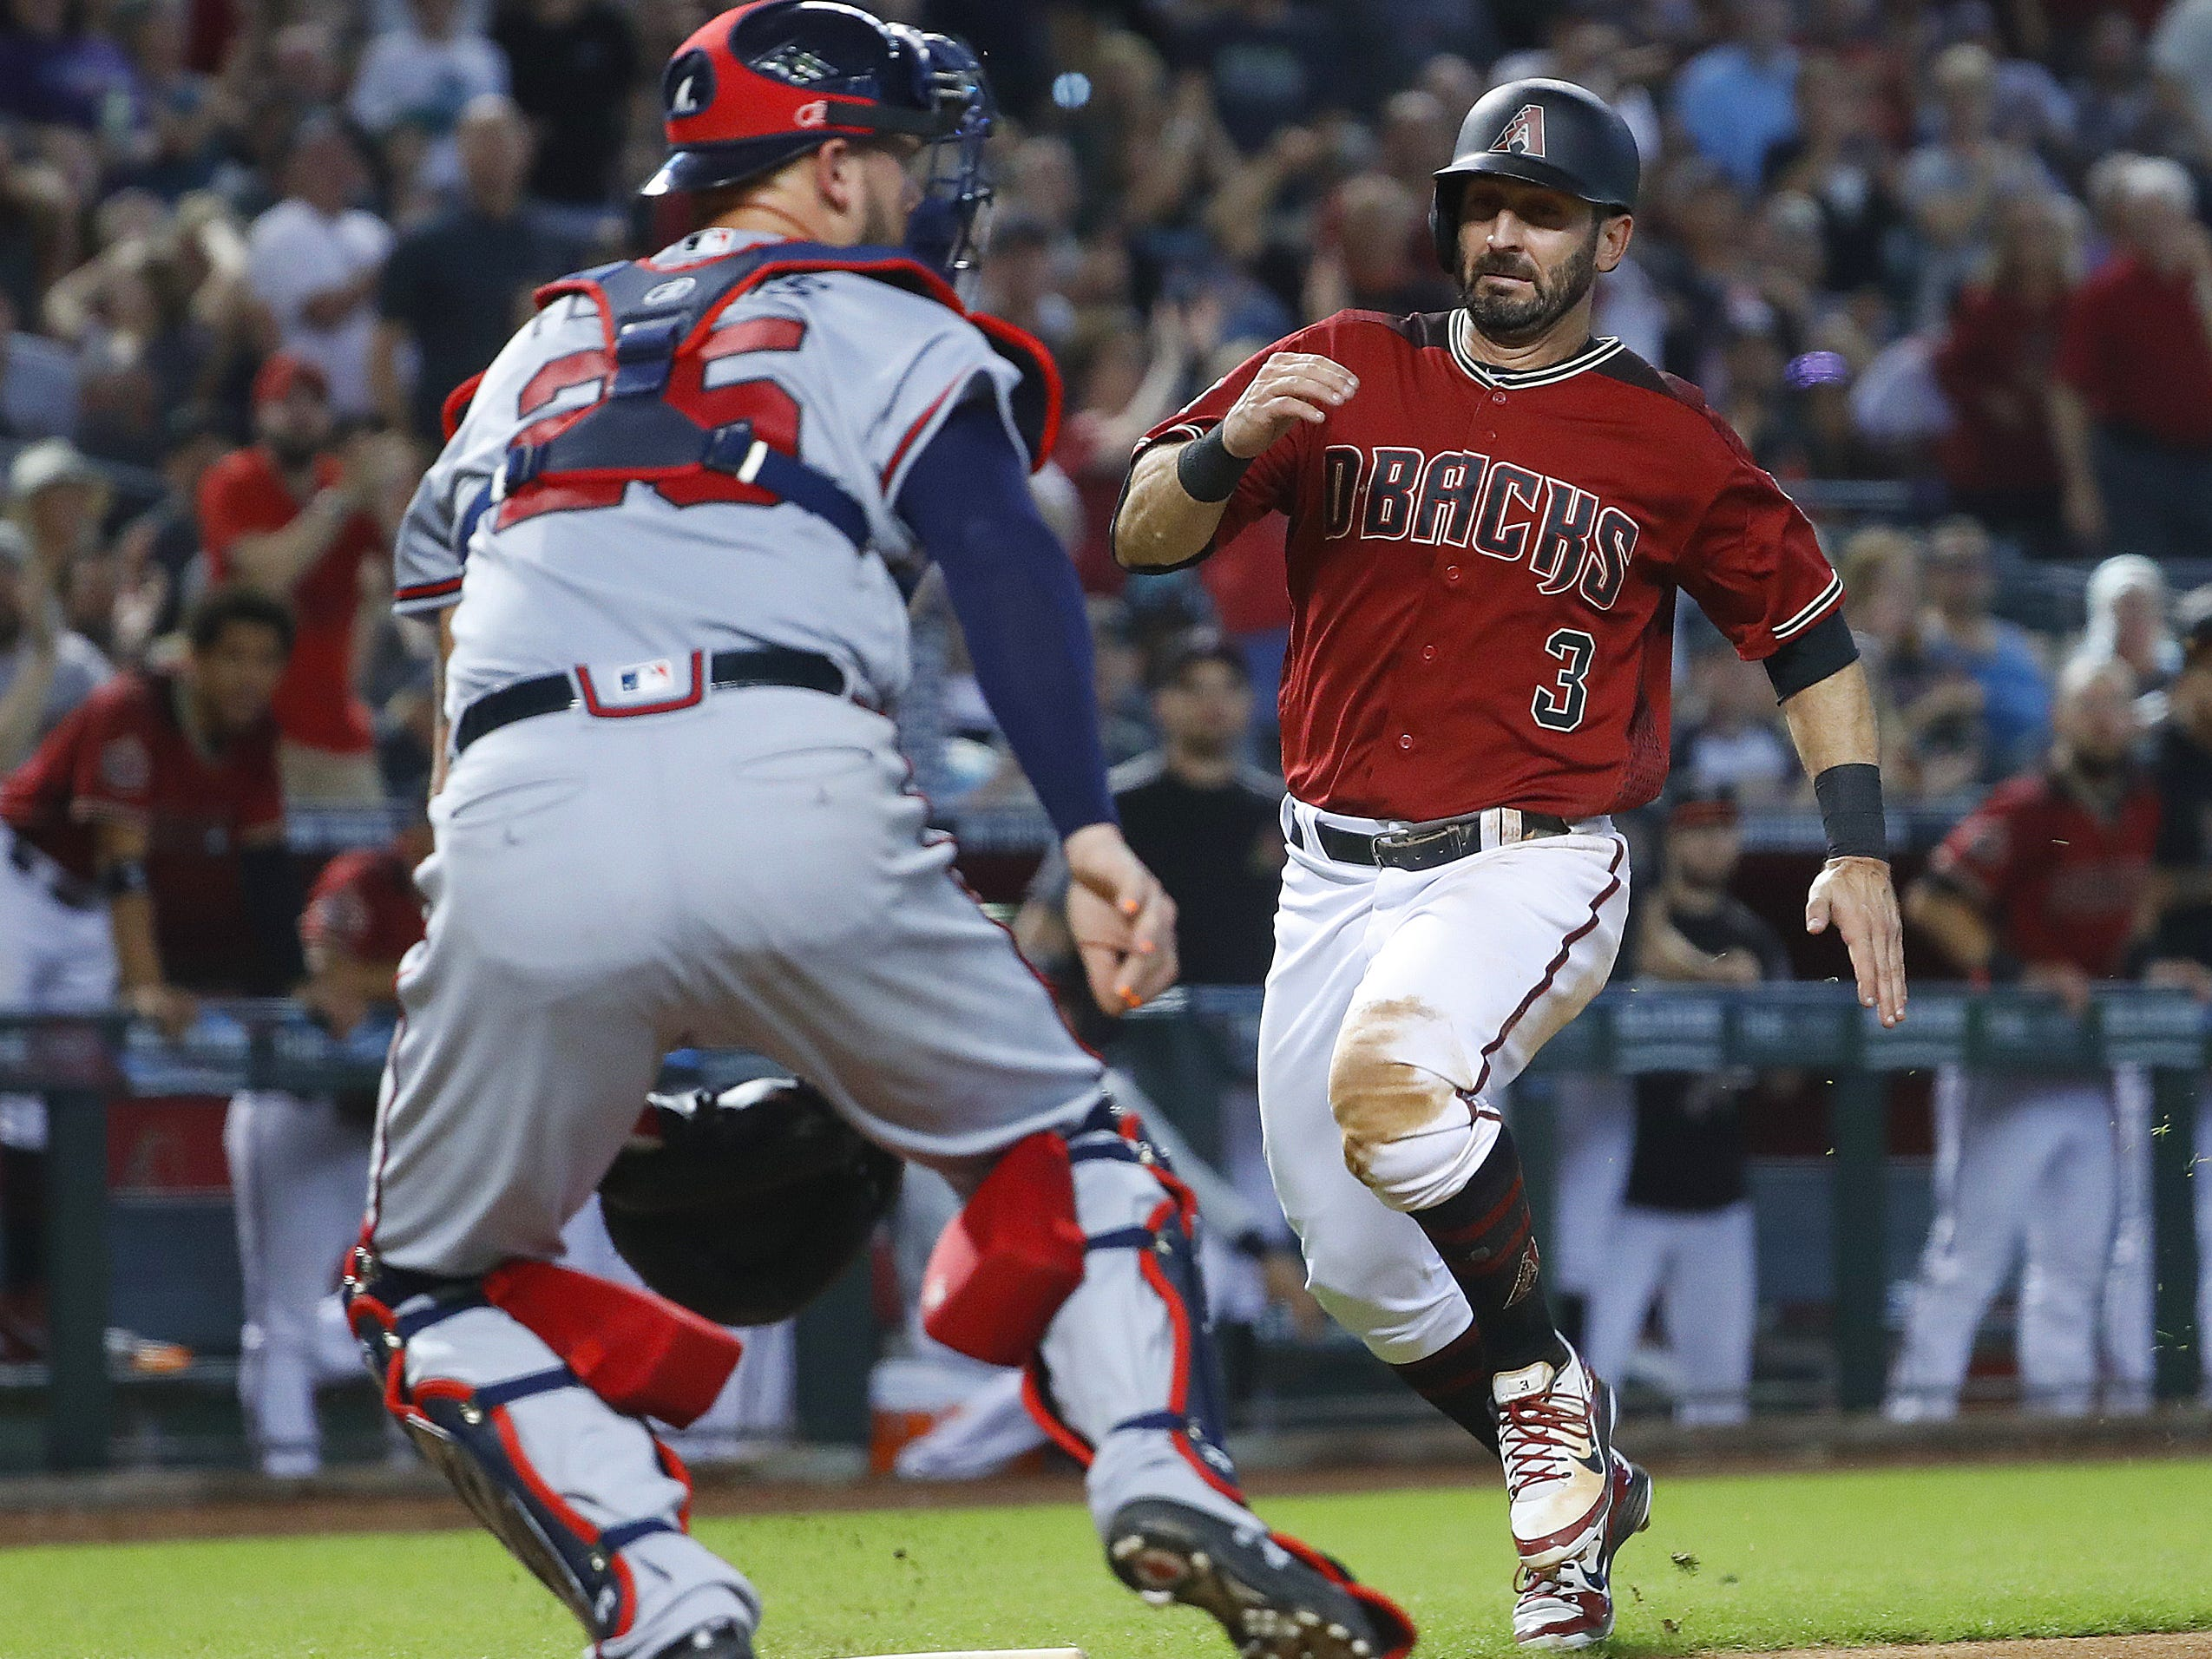 Diamondbacks Daniel Descalso (3) comes home against Braves catcher Tyler Flowers (25), scoring during the sixth inning at Chase Field in Phoenix, Ariz. on Sept. 9, 2018.